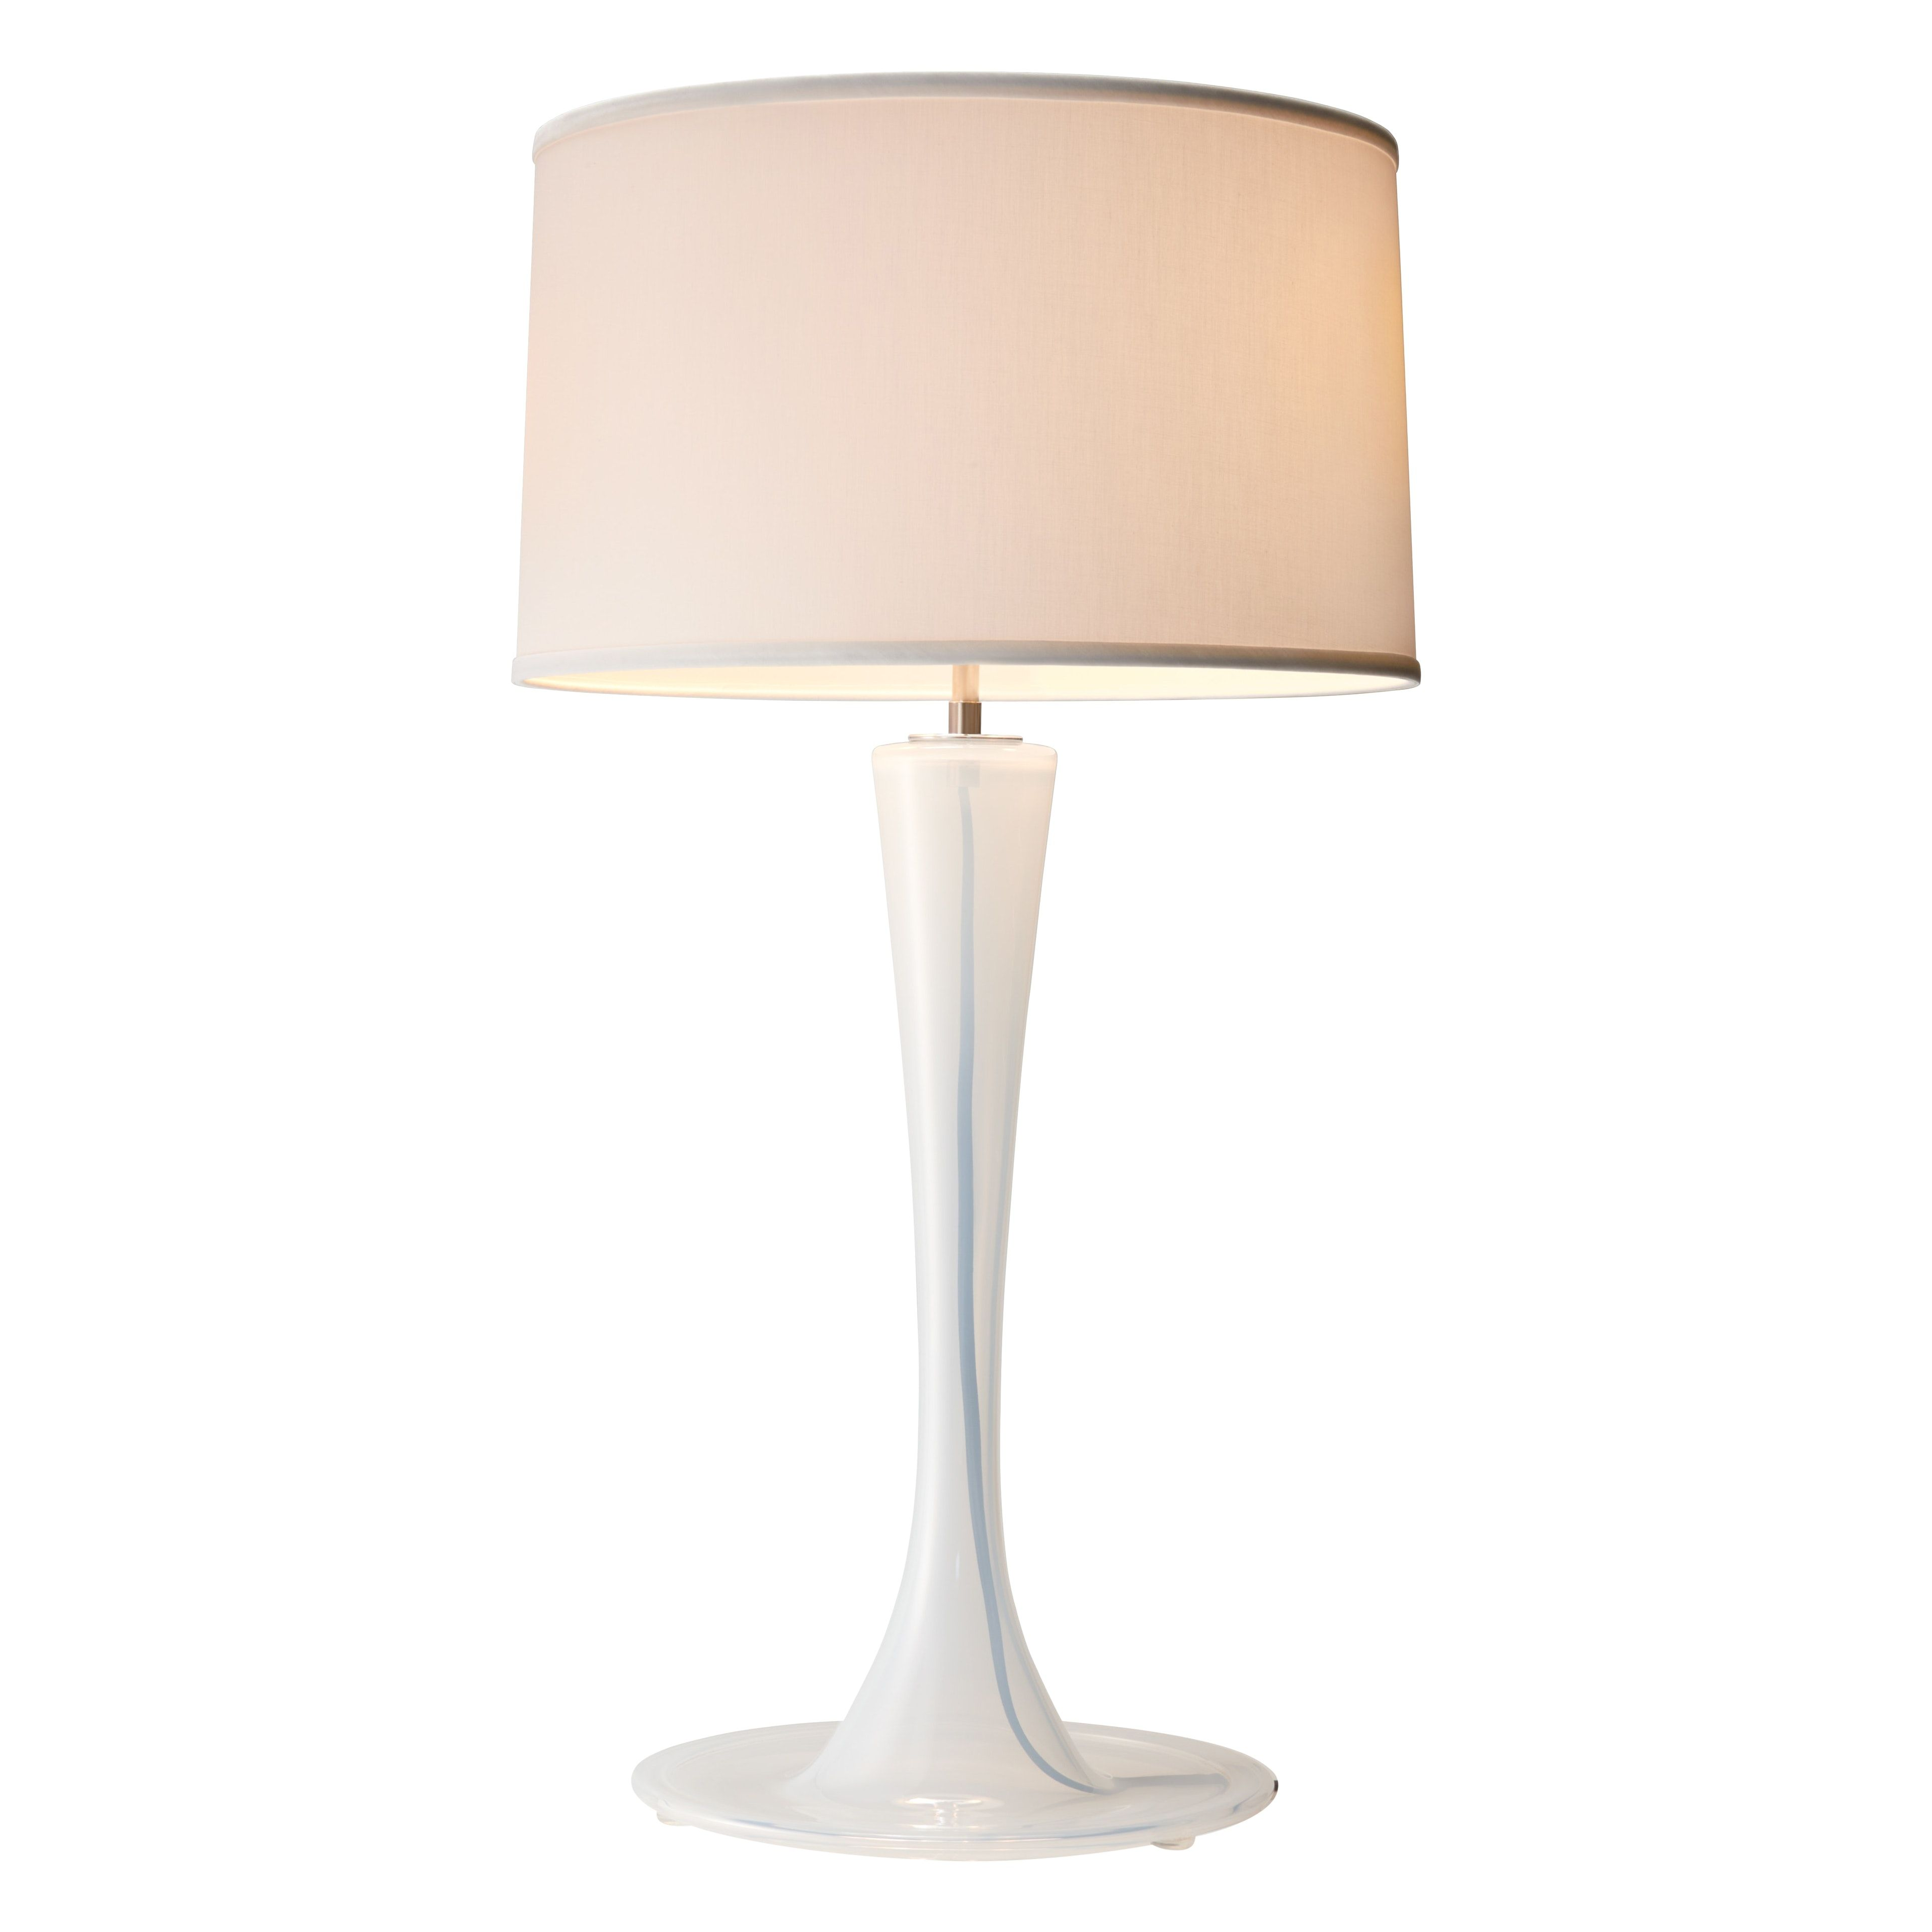 Trumpet Table Lamp By Eidos Glass Offered By Dennis Miller Associates Lamp Crystal Table Lamps Table Lamp